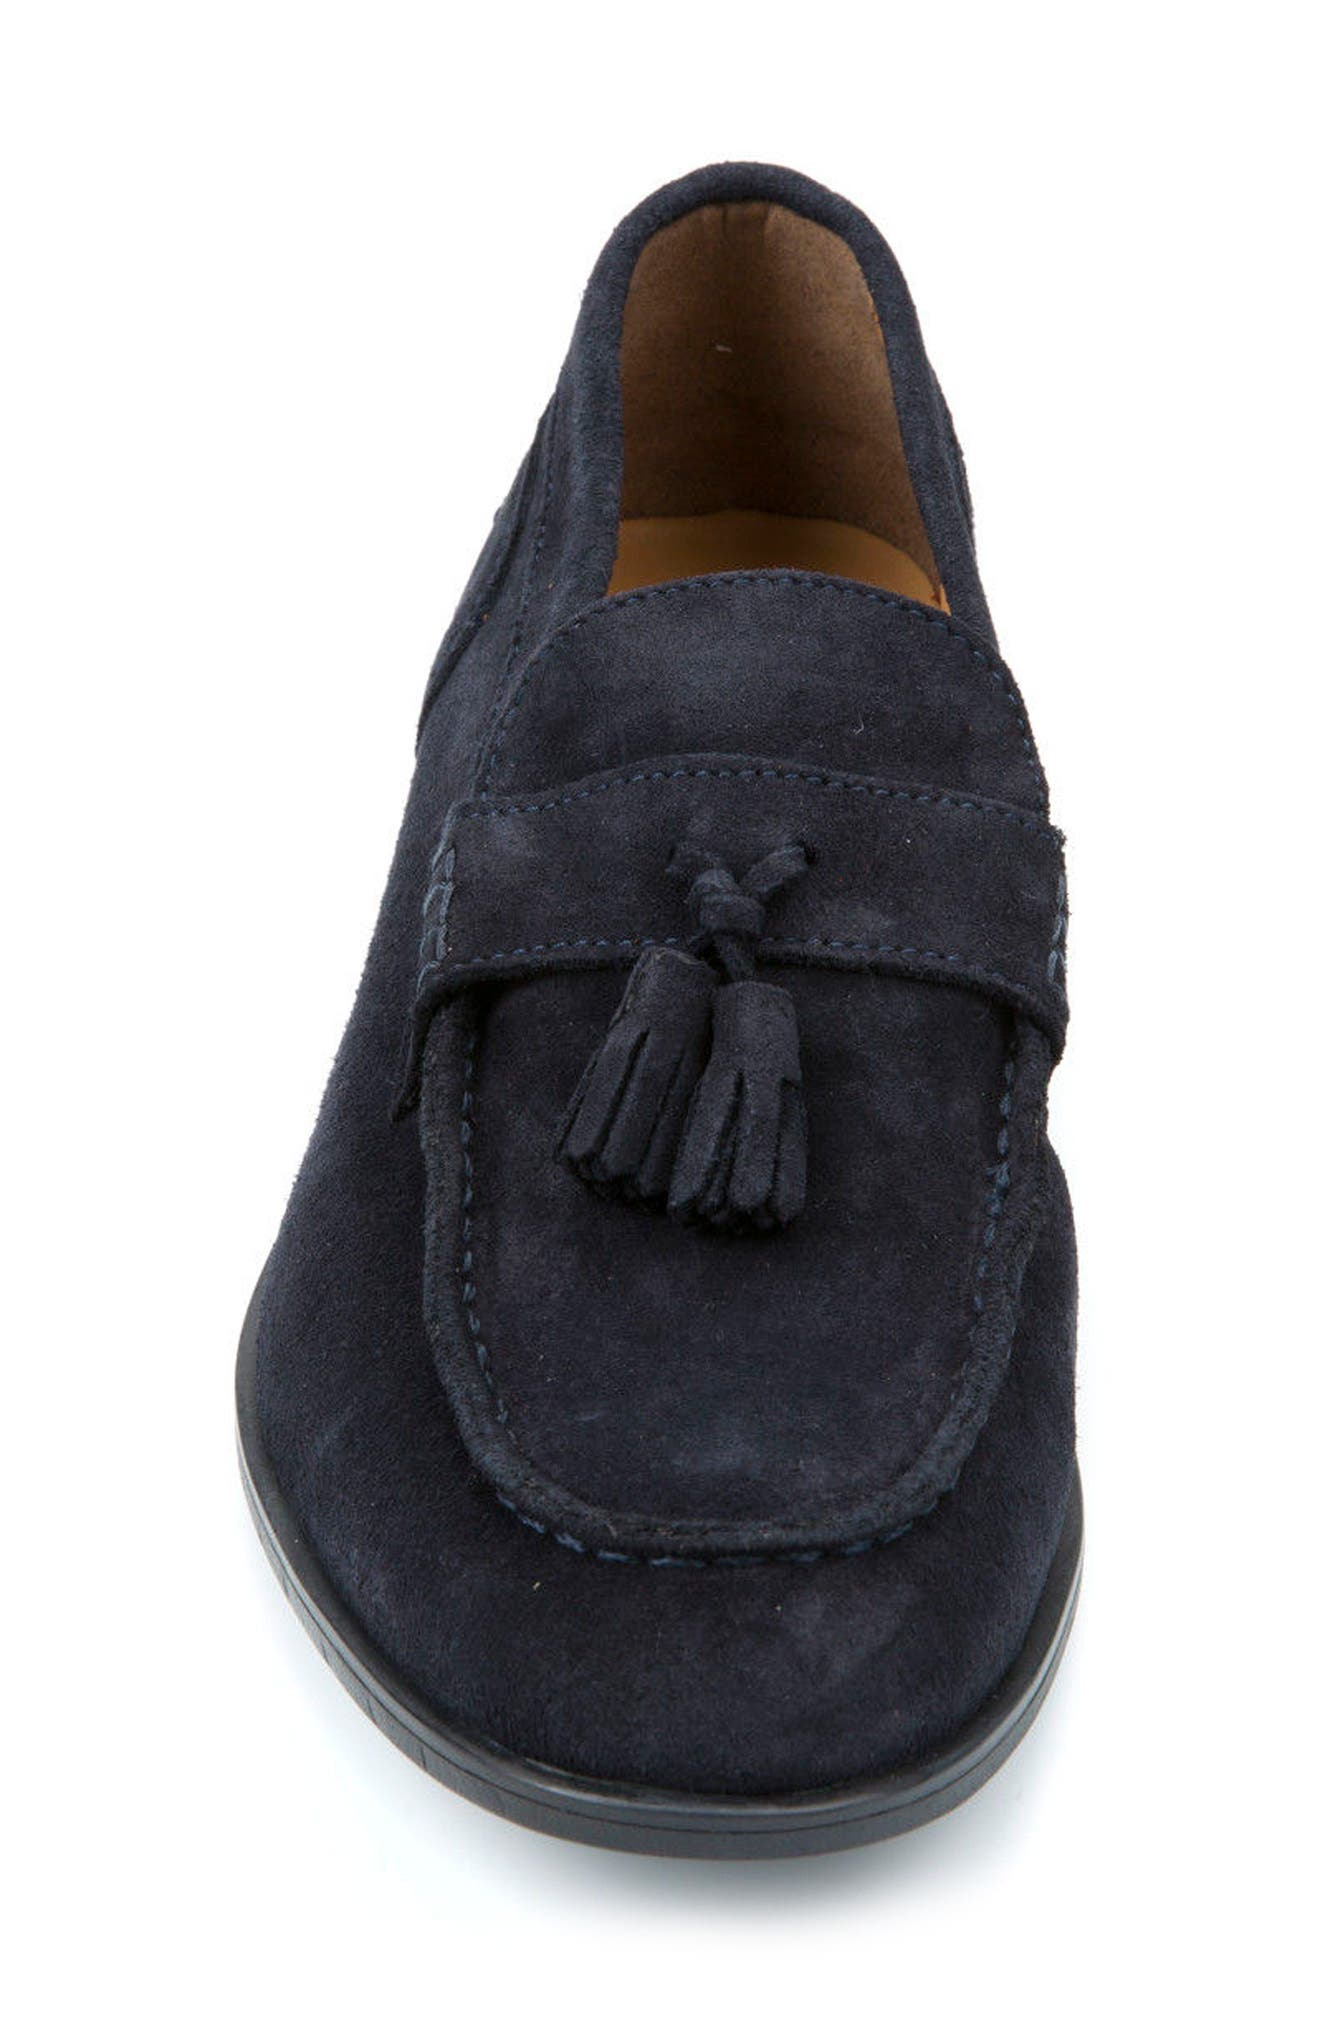 Bryceton 1 Tassel Loafer,                             Alternate thumbnail 4, color,                             Navy Suede